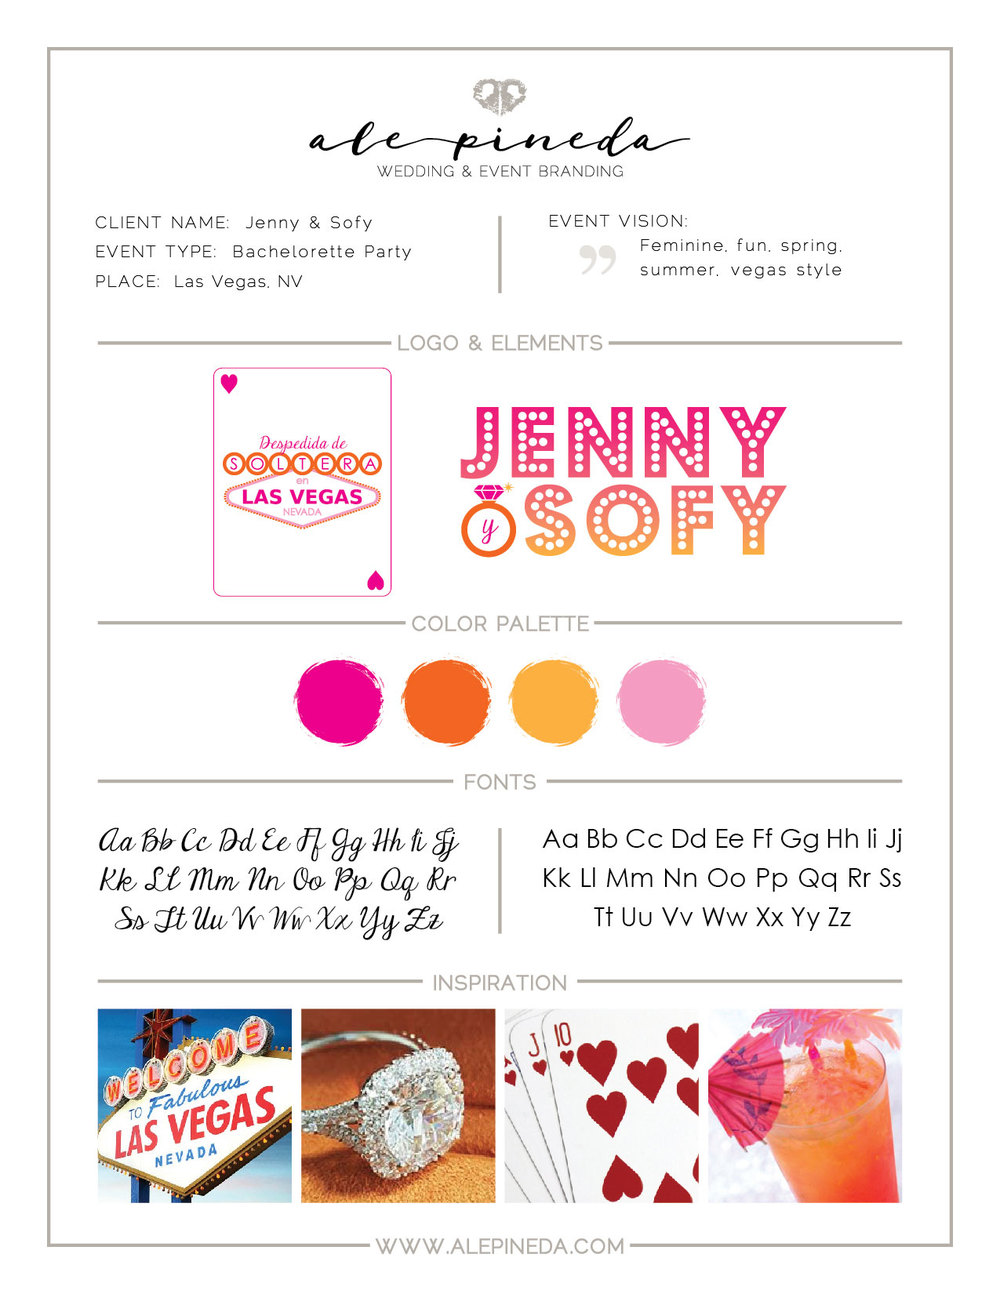 Vegas Bachelorette Party Branding, las vegas, pink, orange, sring, summer, feminine